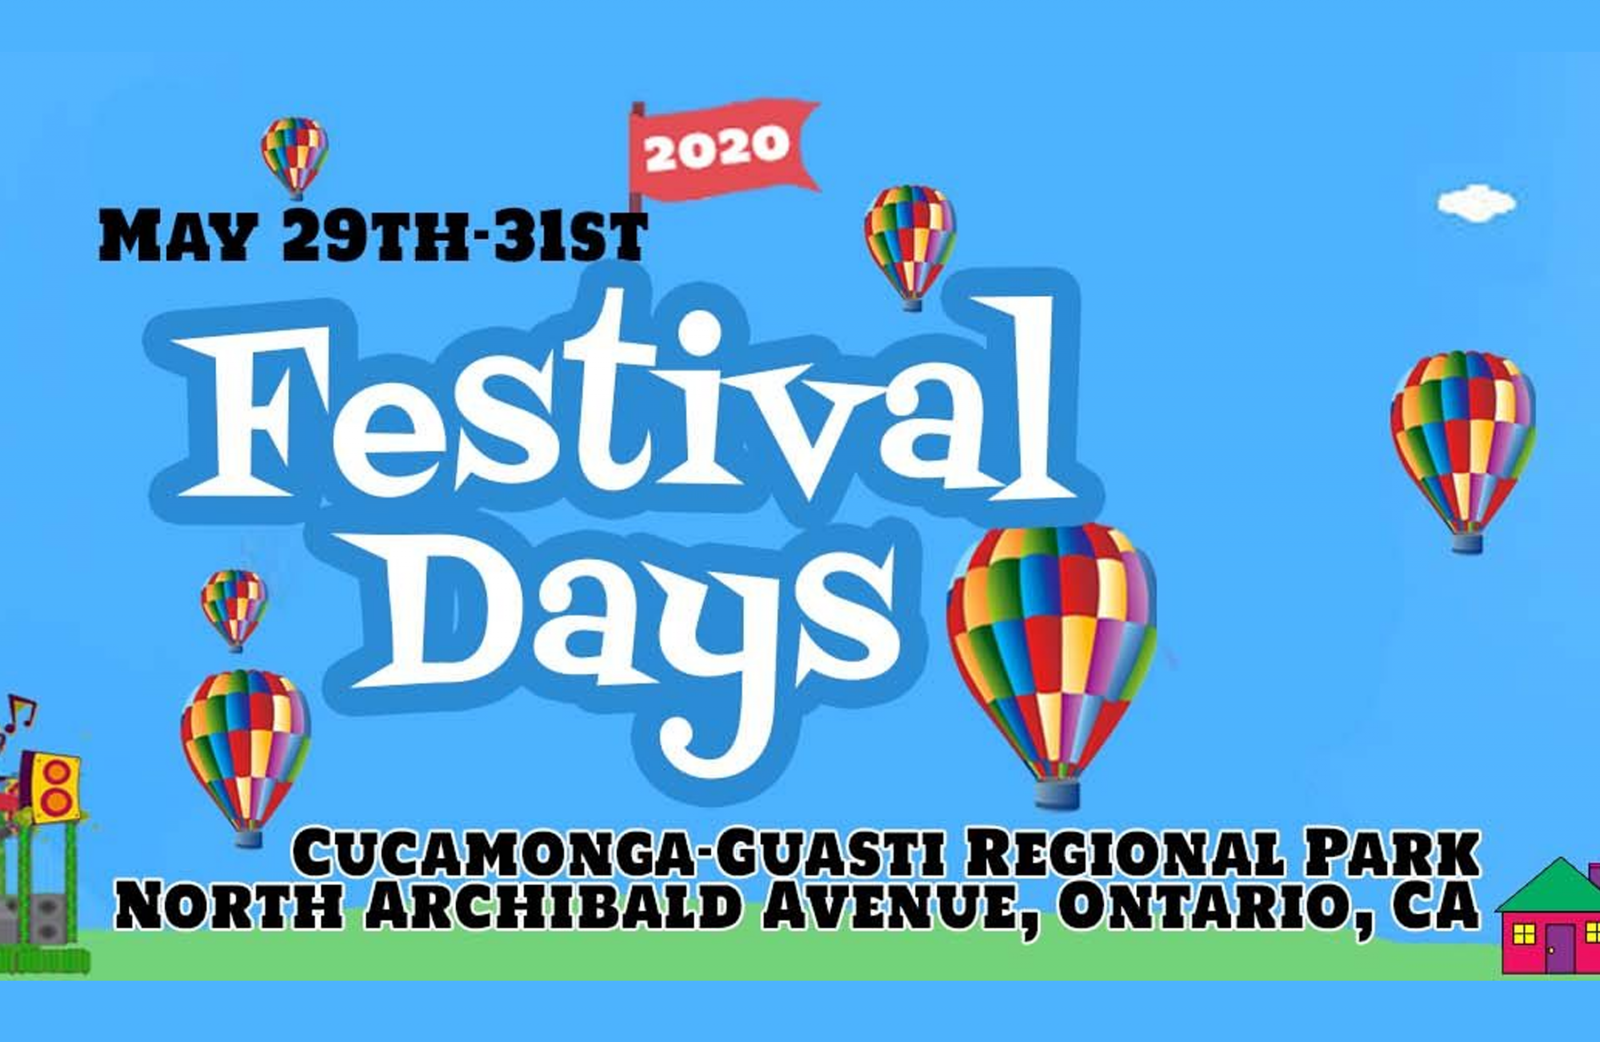 Cartoon graphic of bright colored hot air balloons and kids-type font in Festival Days.